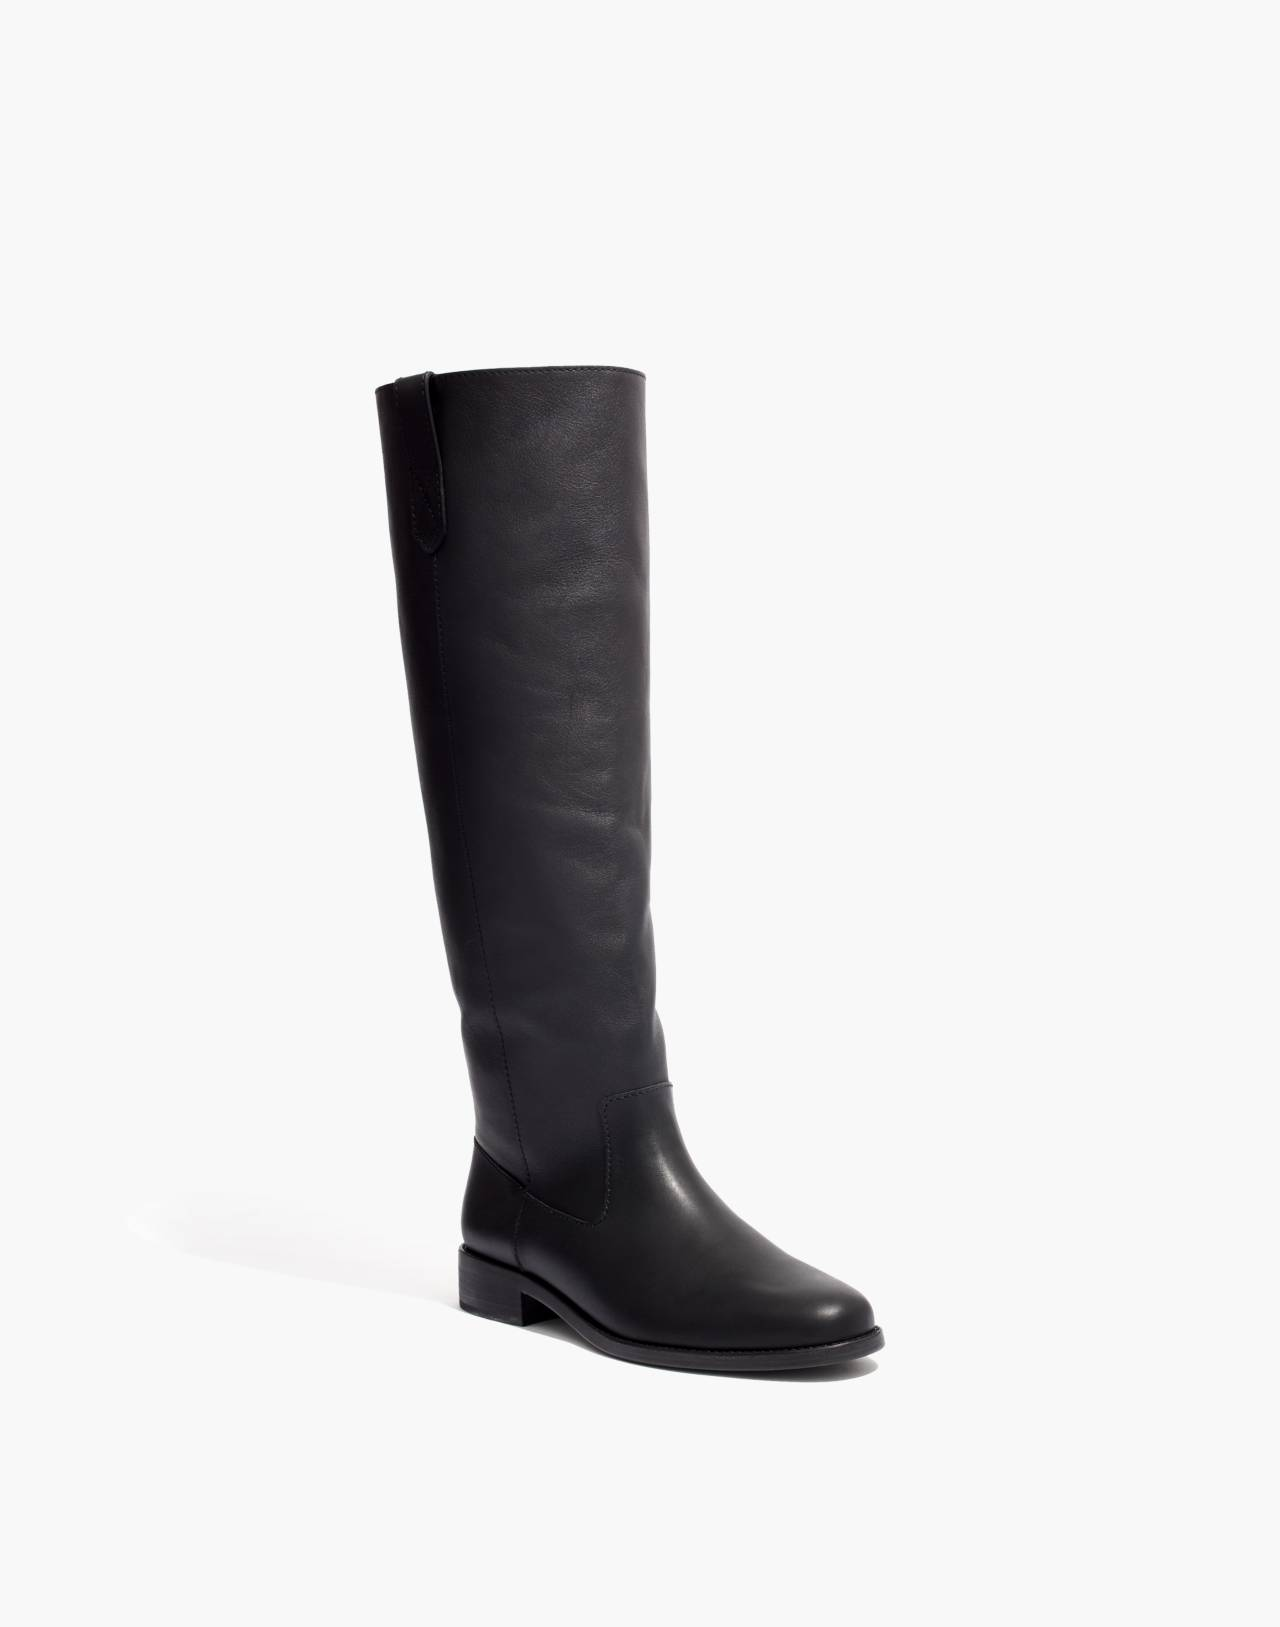 The Allie Knee-High Boot in true black image 2